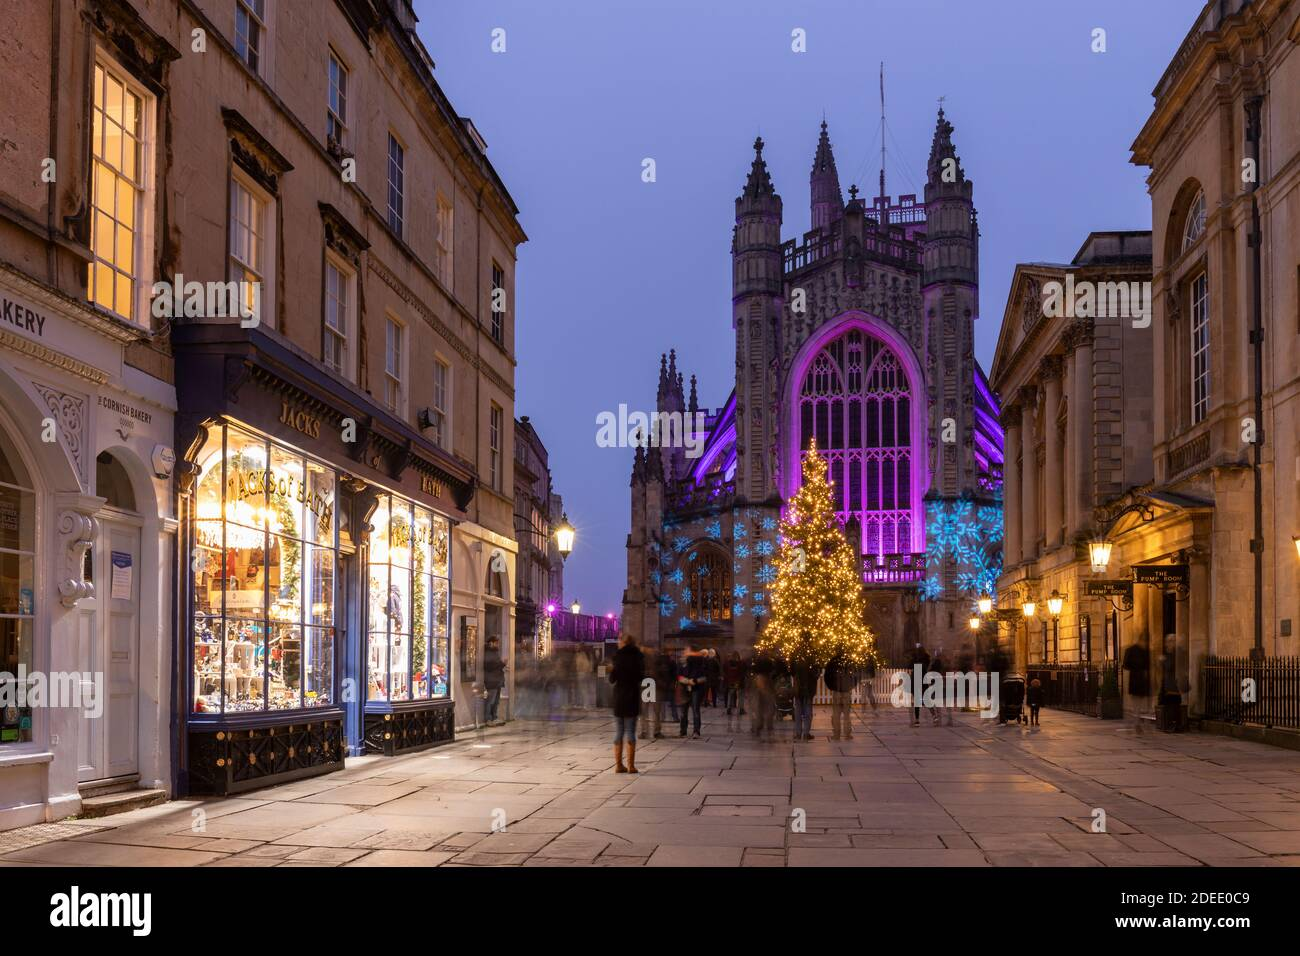 Bath Abbey lit with colourful illuminations and a bright tall Christmas tree. Part of the 2020 Christmas Light Trail in Bath City Centre, England, UK Stock Photo